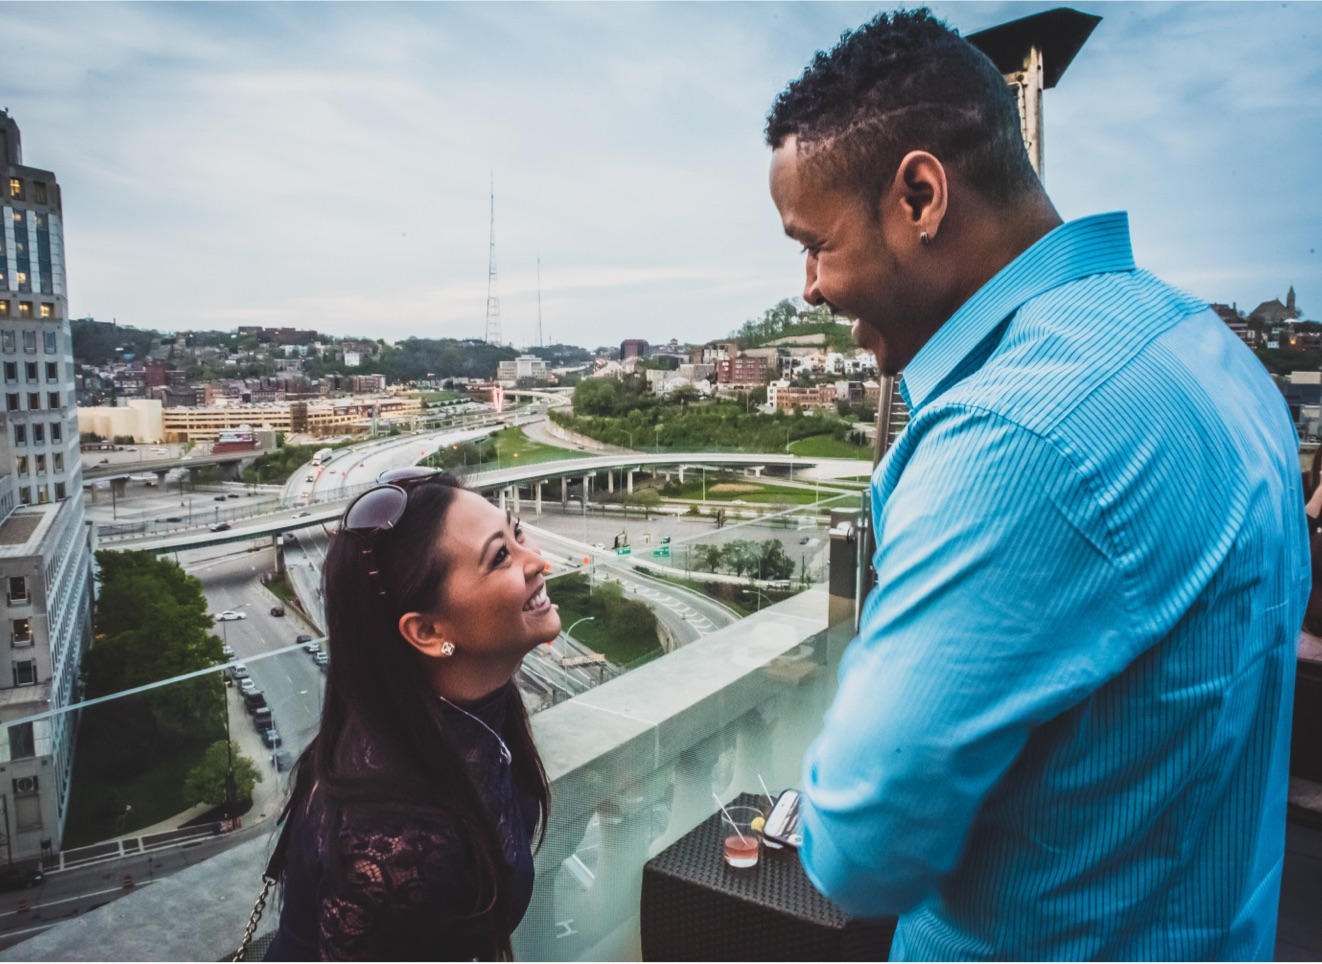 man and woman smiling at each other on a rooftop